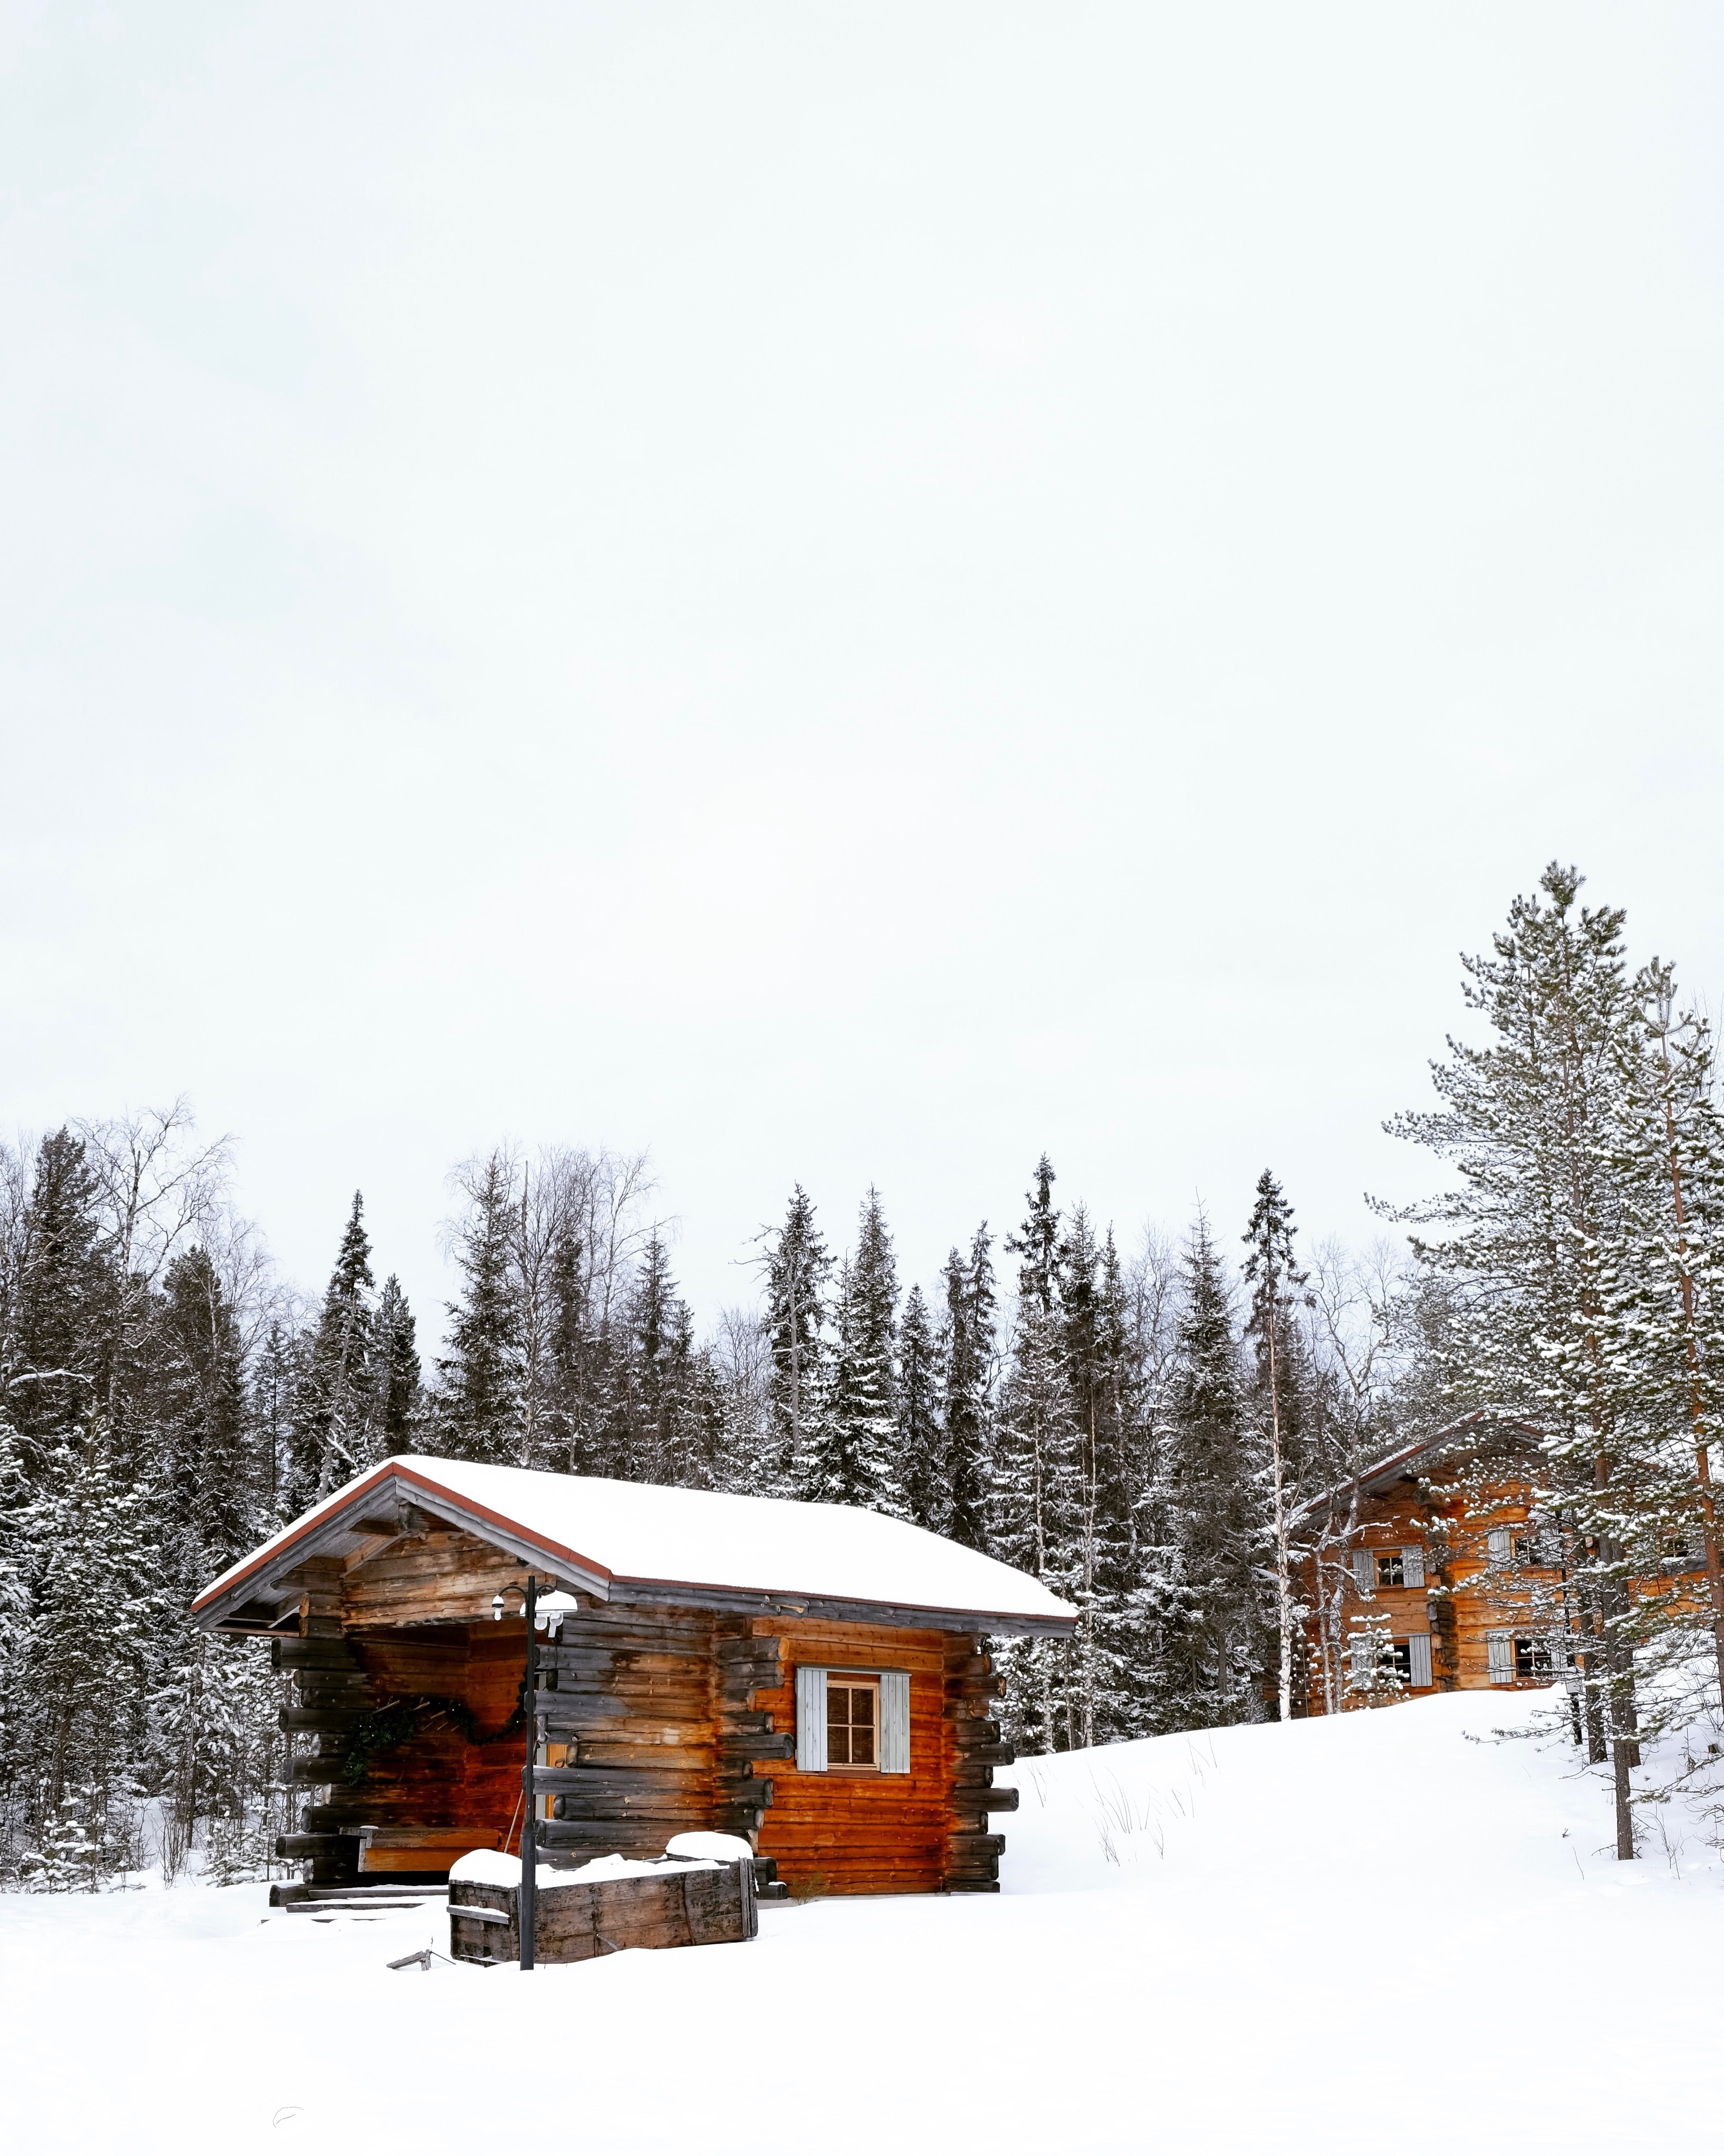 A wooden cabin sitting on a mountain in Rovaniemi, Finland